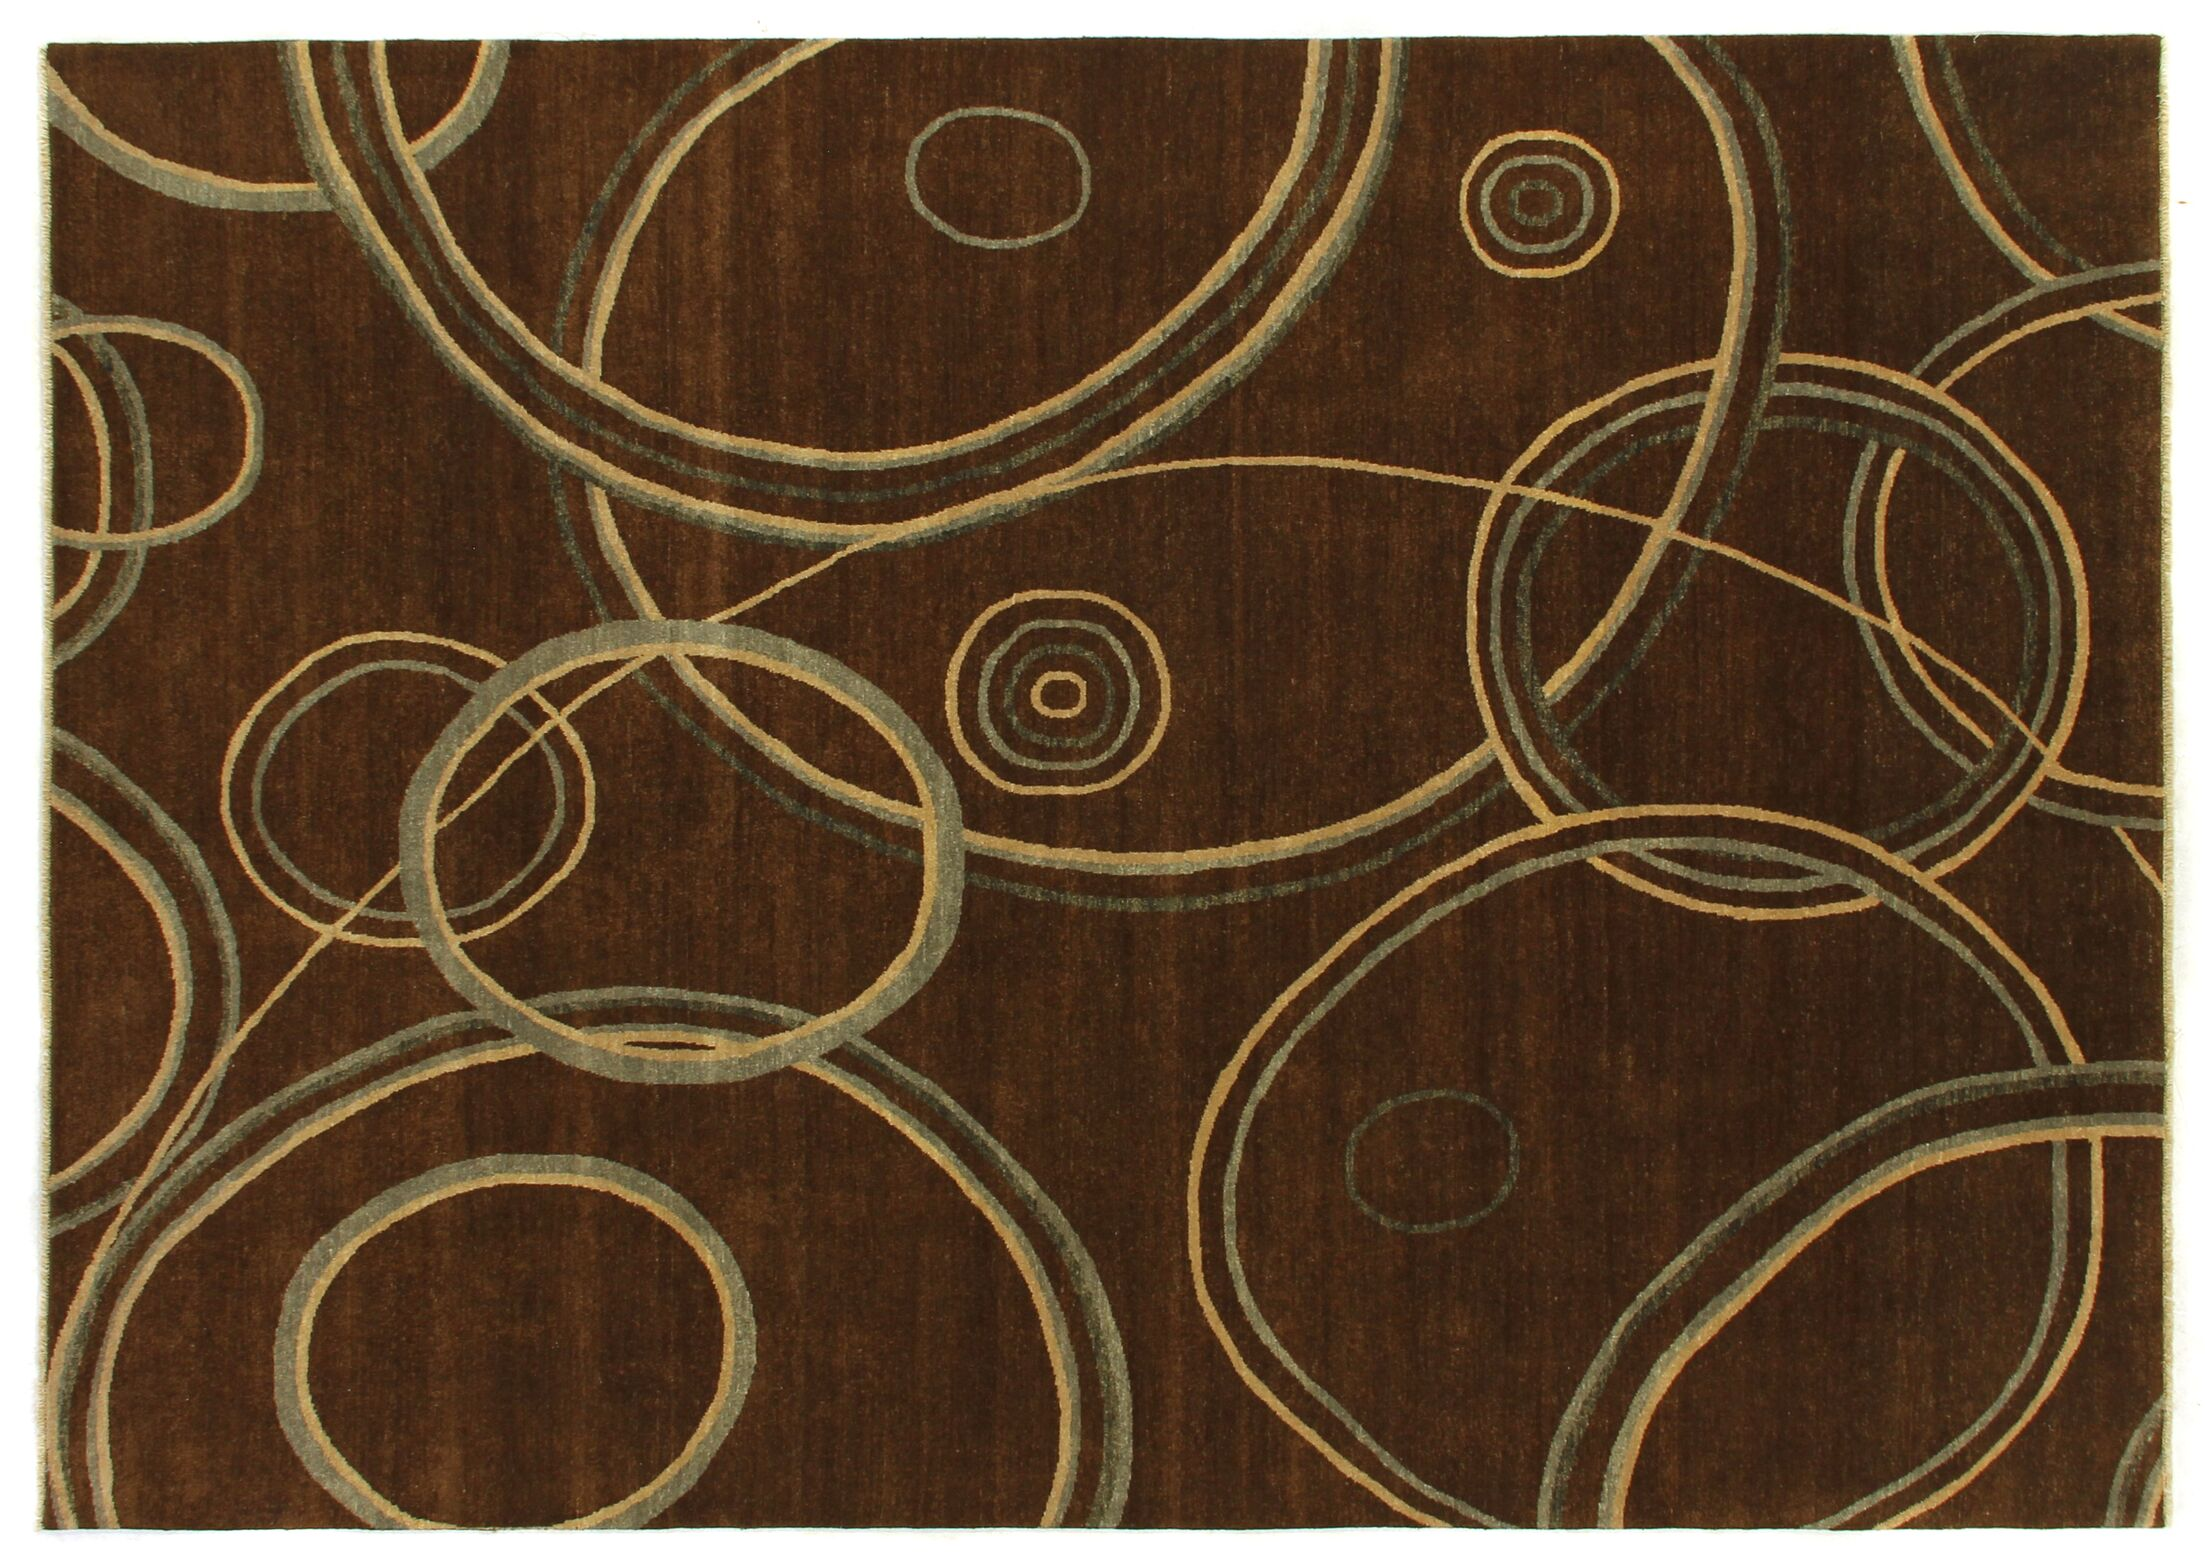 Metropolitan Hand-Knotted Wool Brown Area Rug Rug Size: Rectangle 9' x 12'